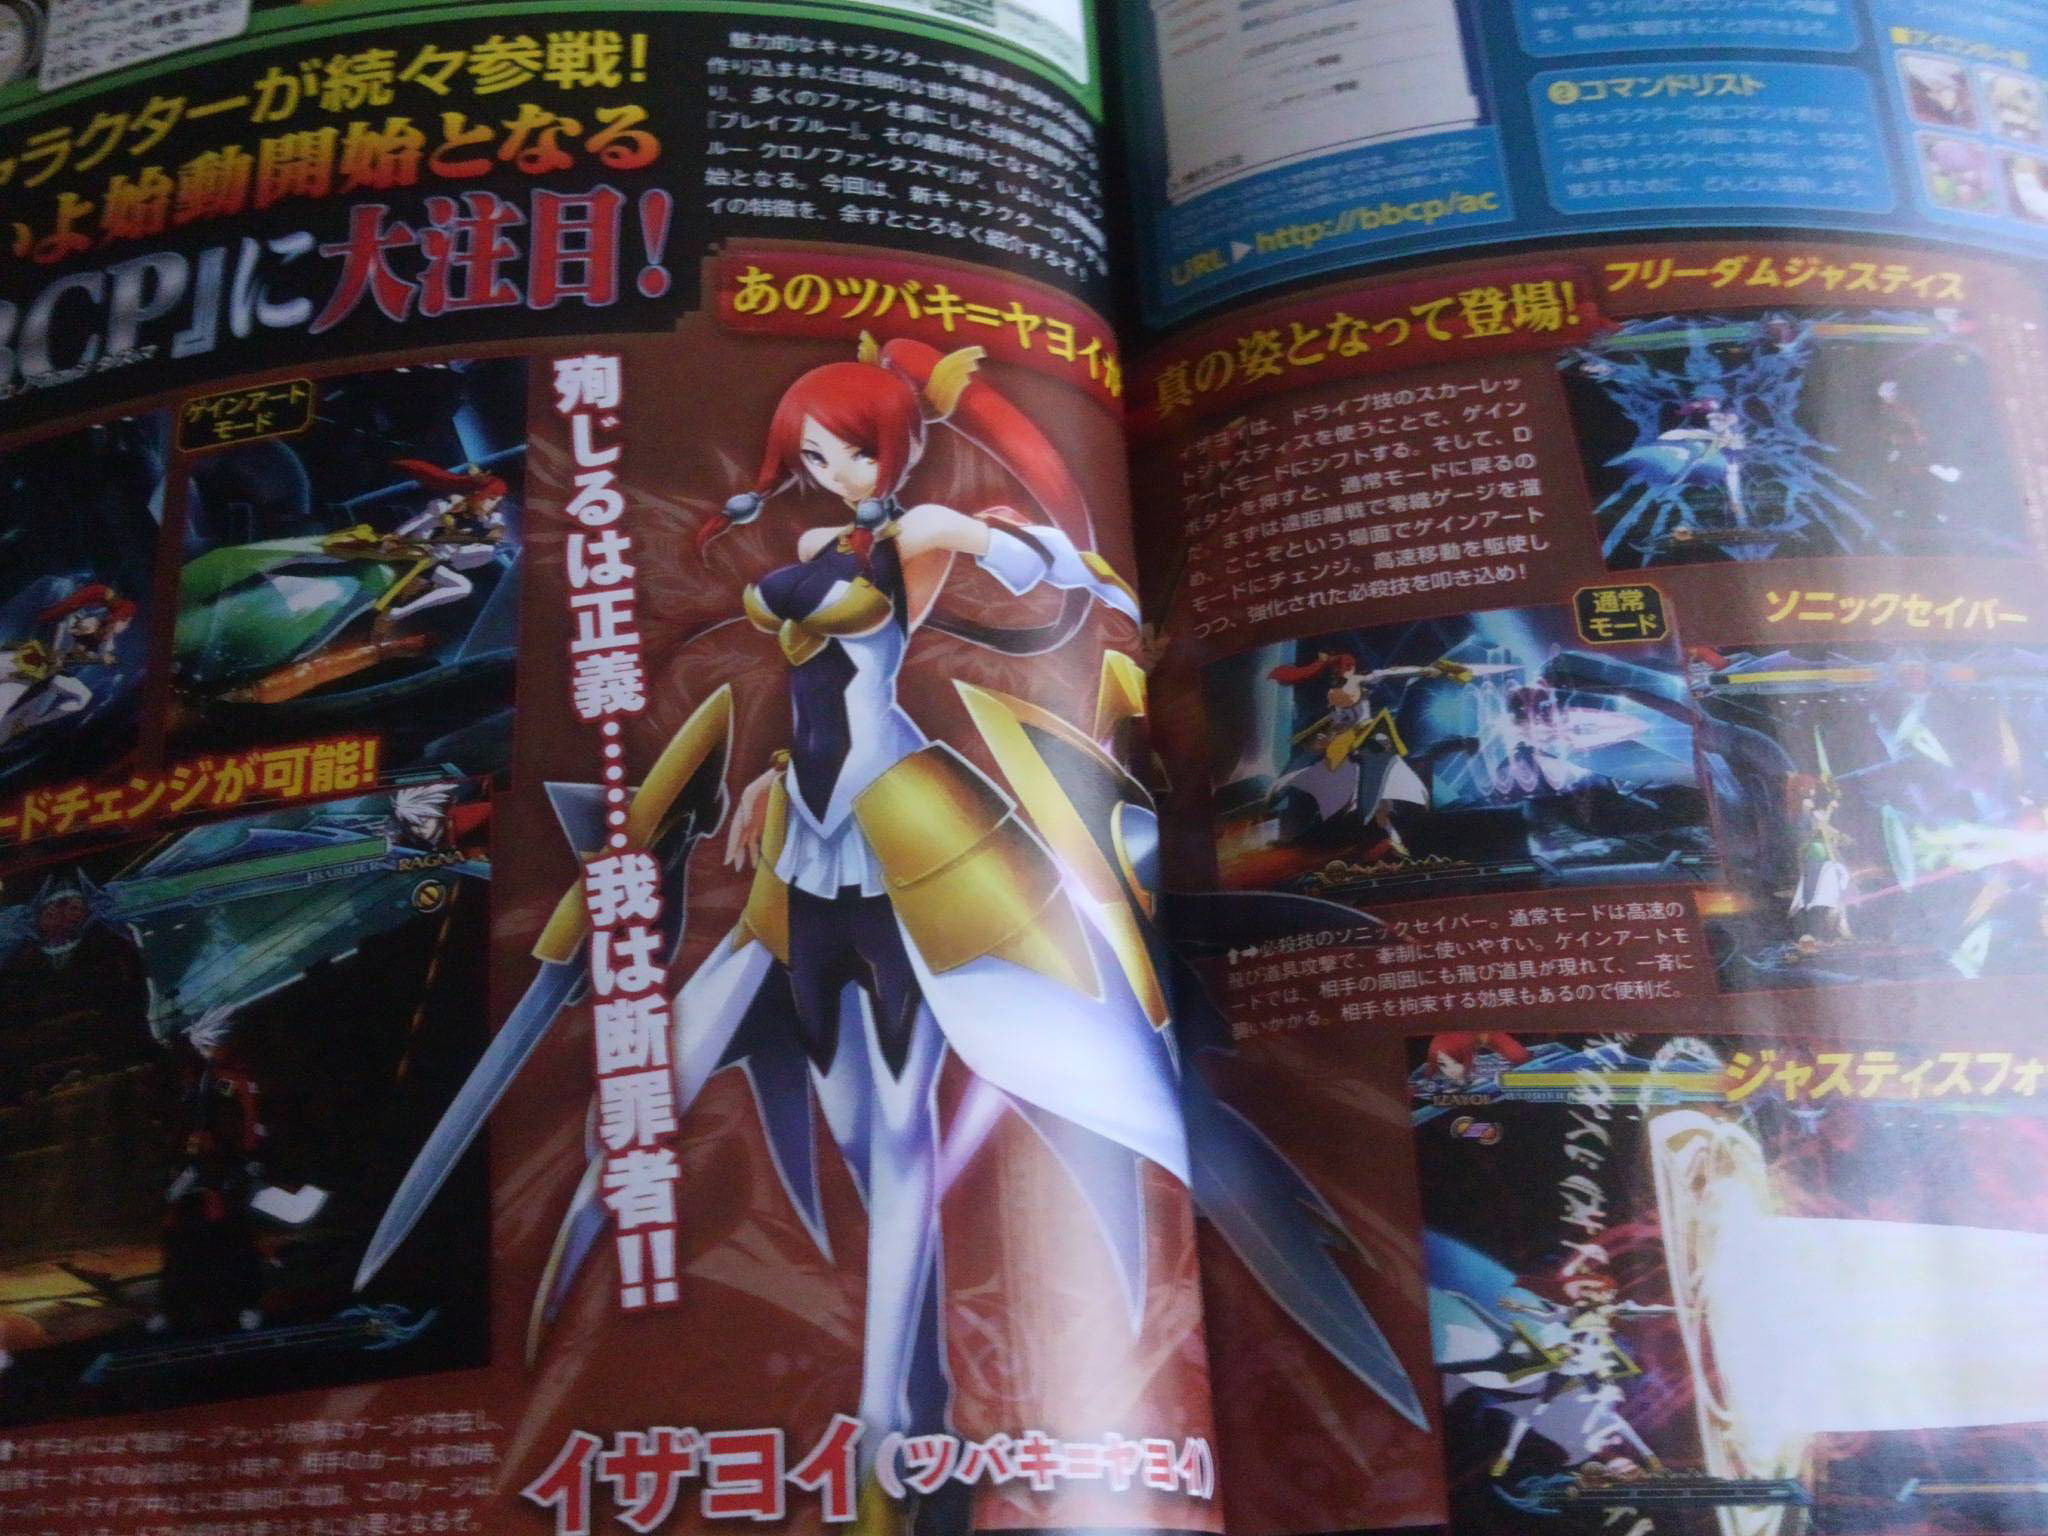 Blazblue: Chrono Phantasma new character Izayoi image #5